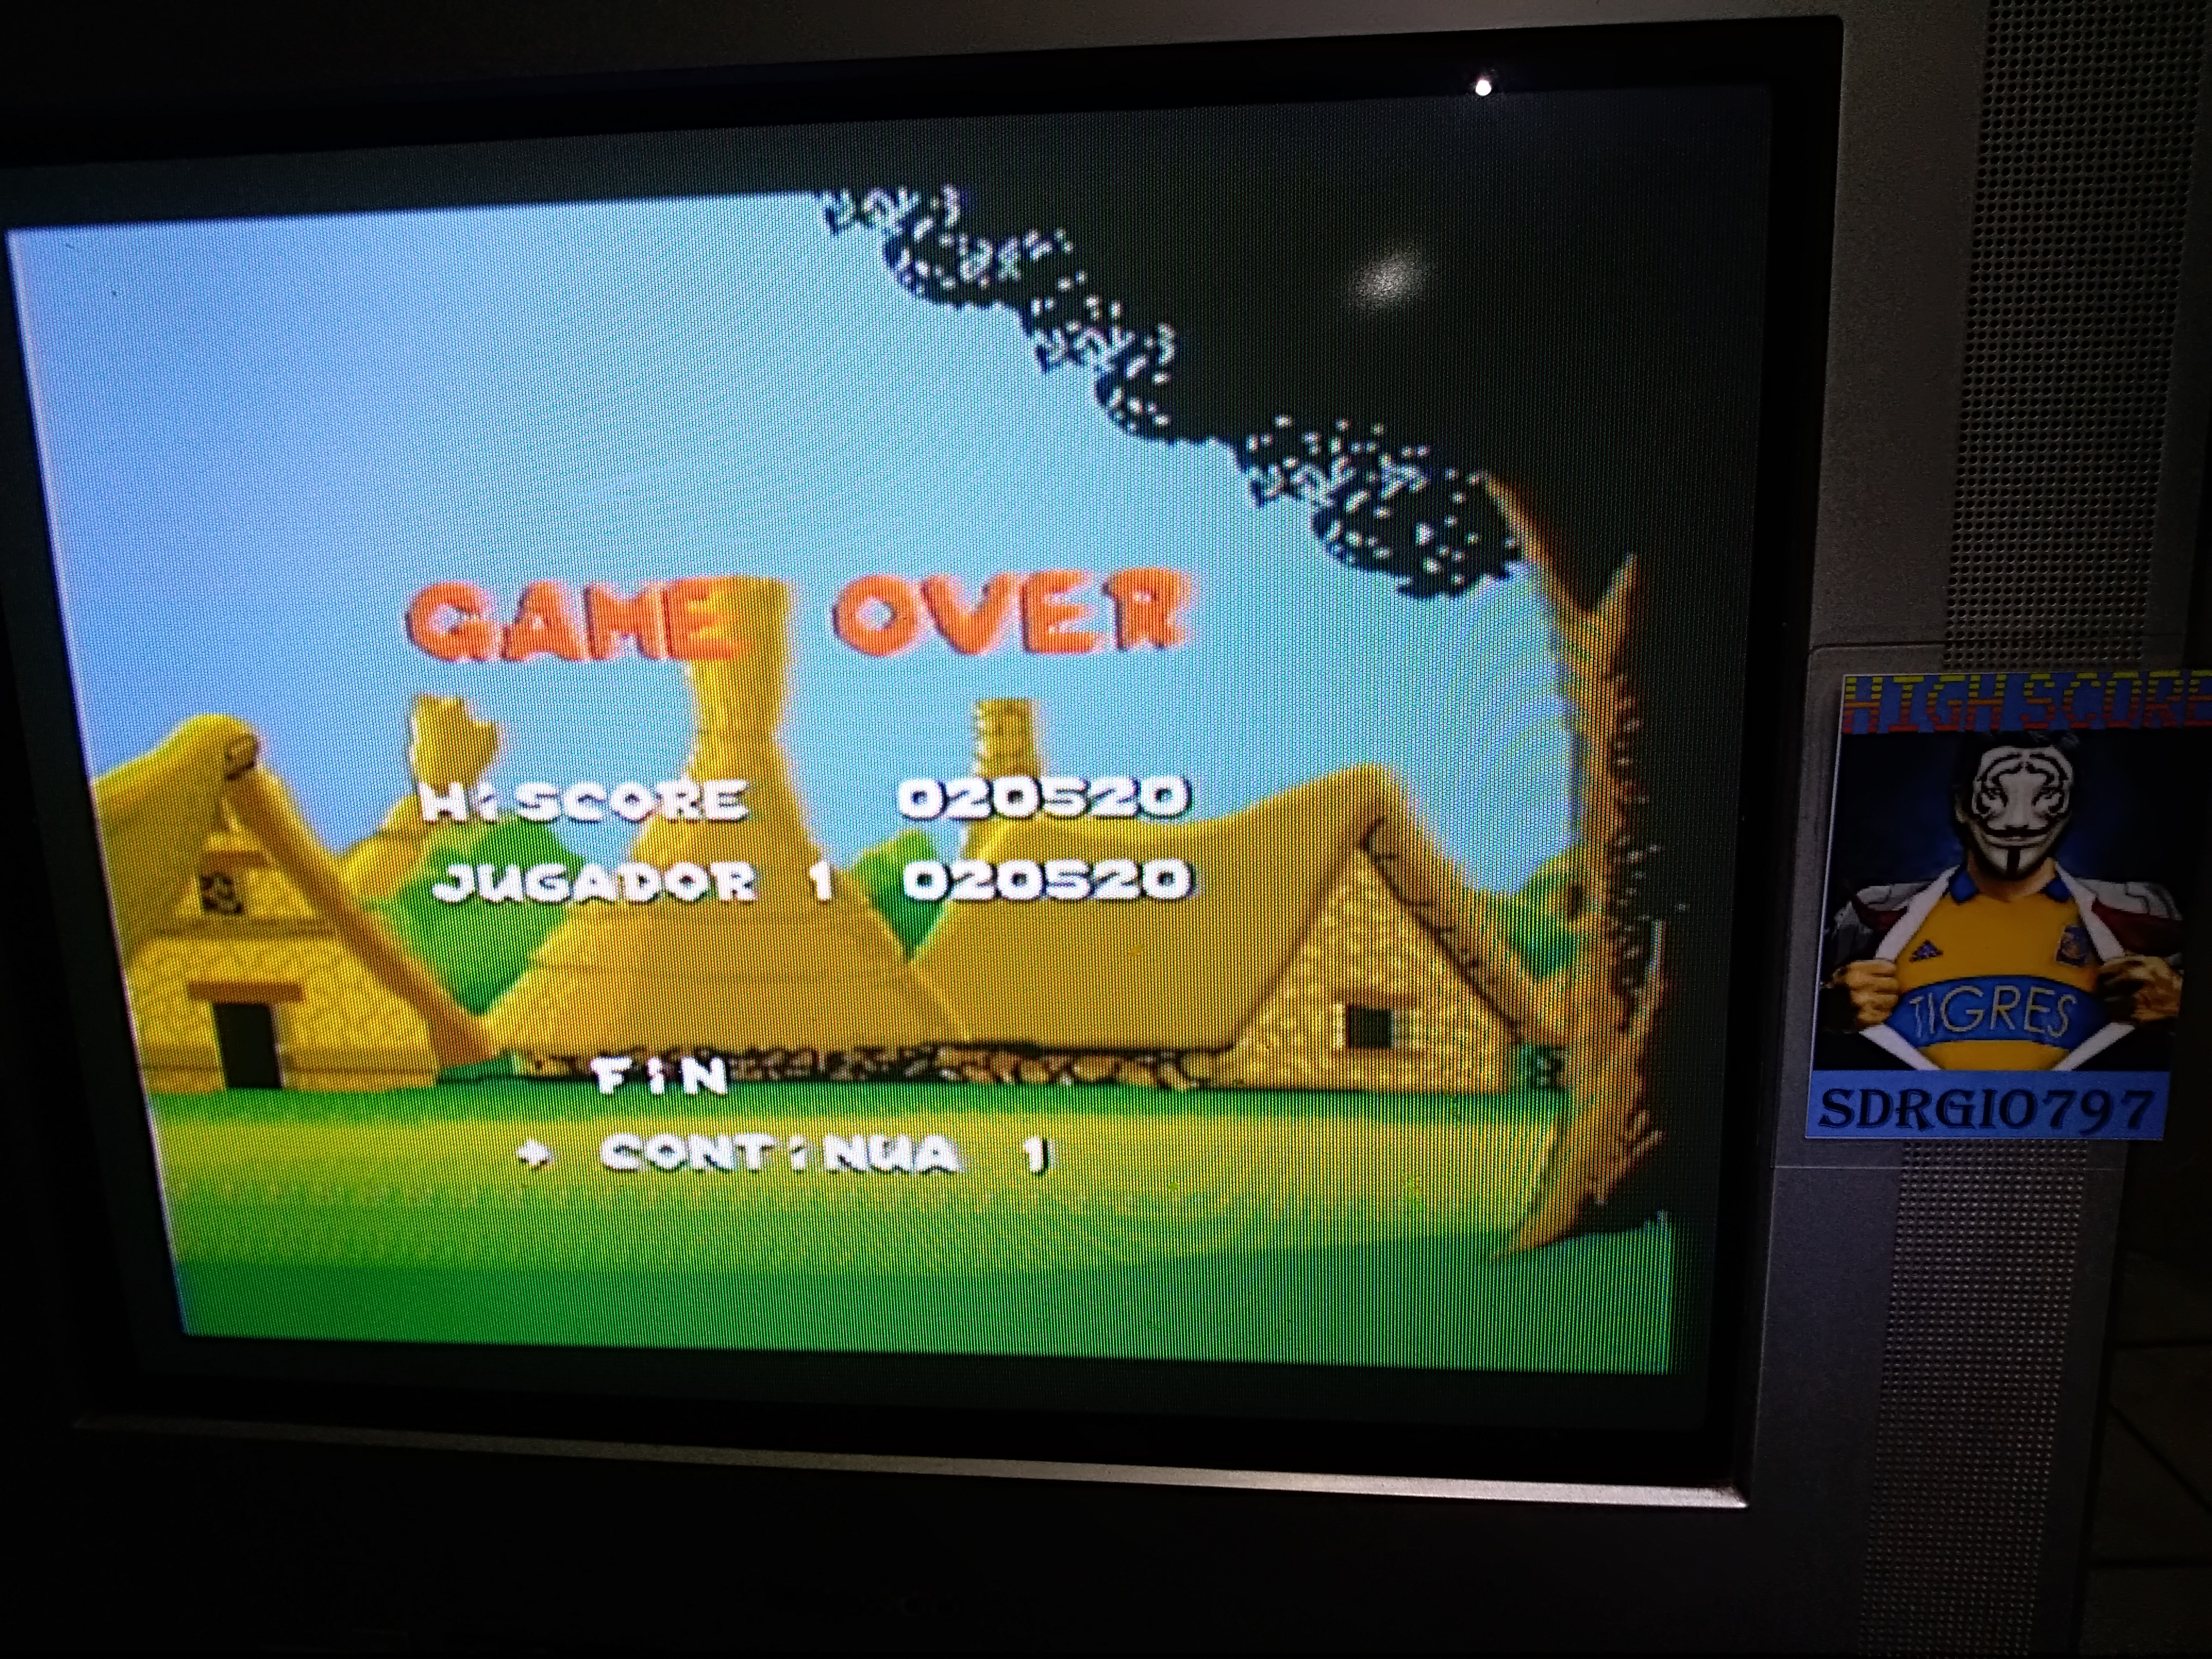 Sdrgio797: Asterix [Difficult] (SNES/Super Famicom Emulated) 20,520 points on 2020-07-28 23:40:40